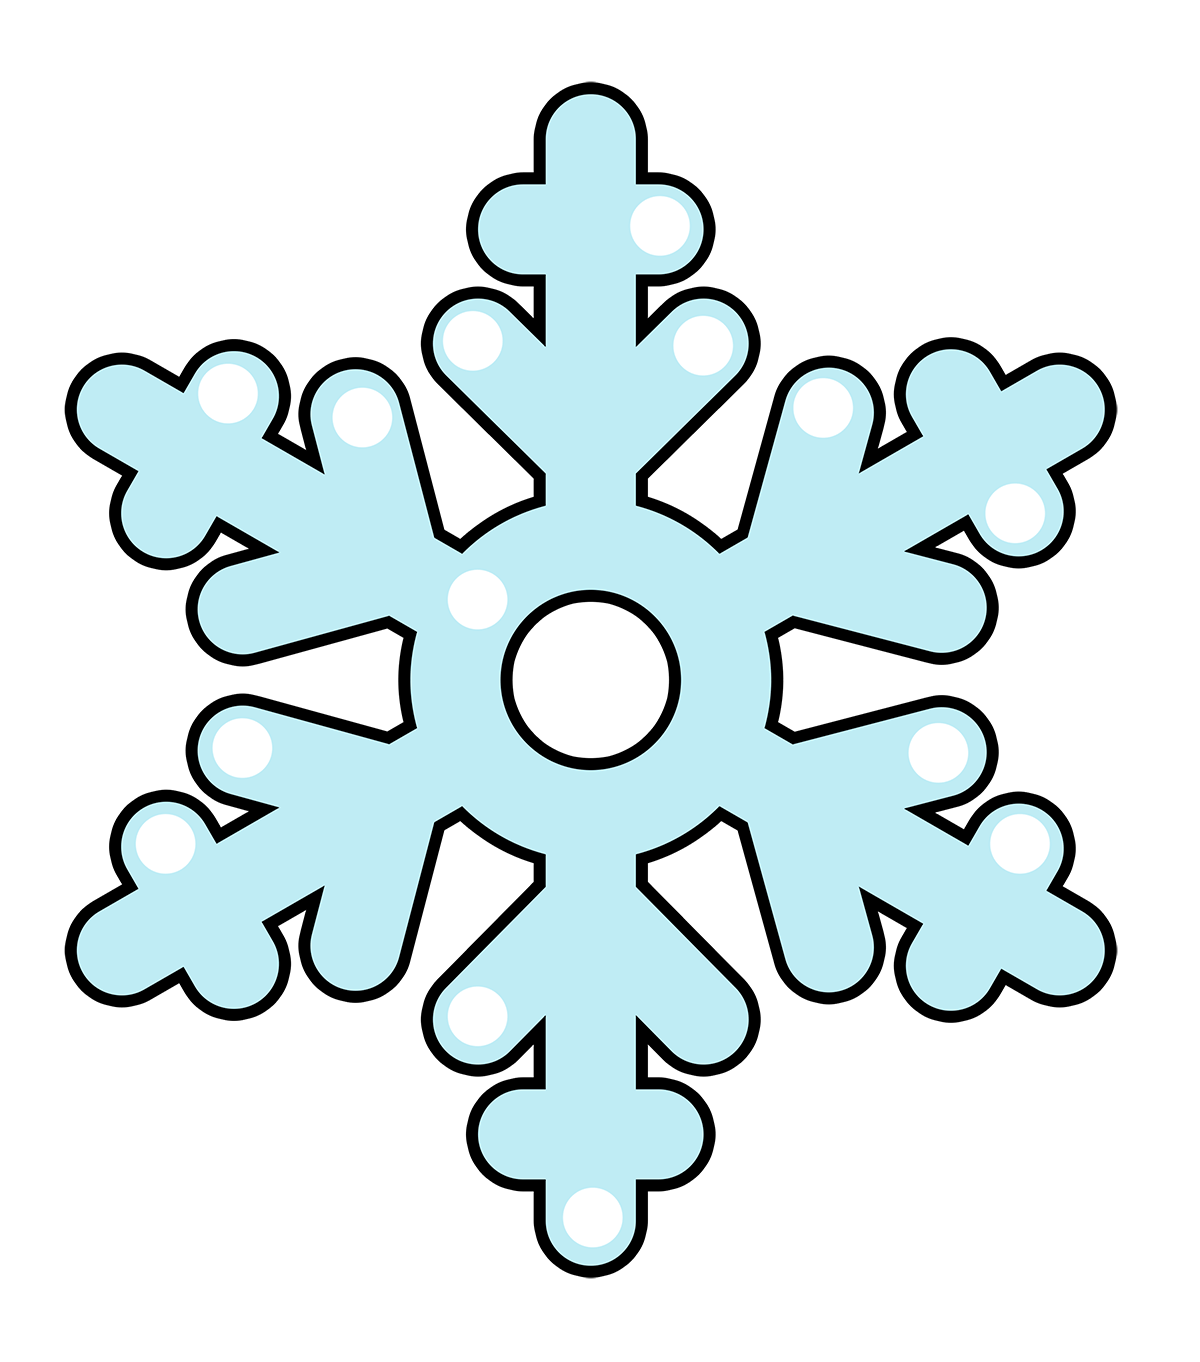 Free Animated Snowflake Cliparts, Download Free Clip Art.